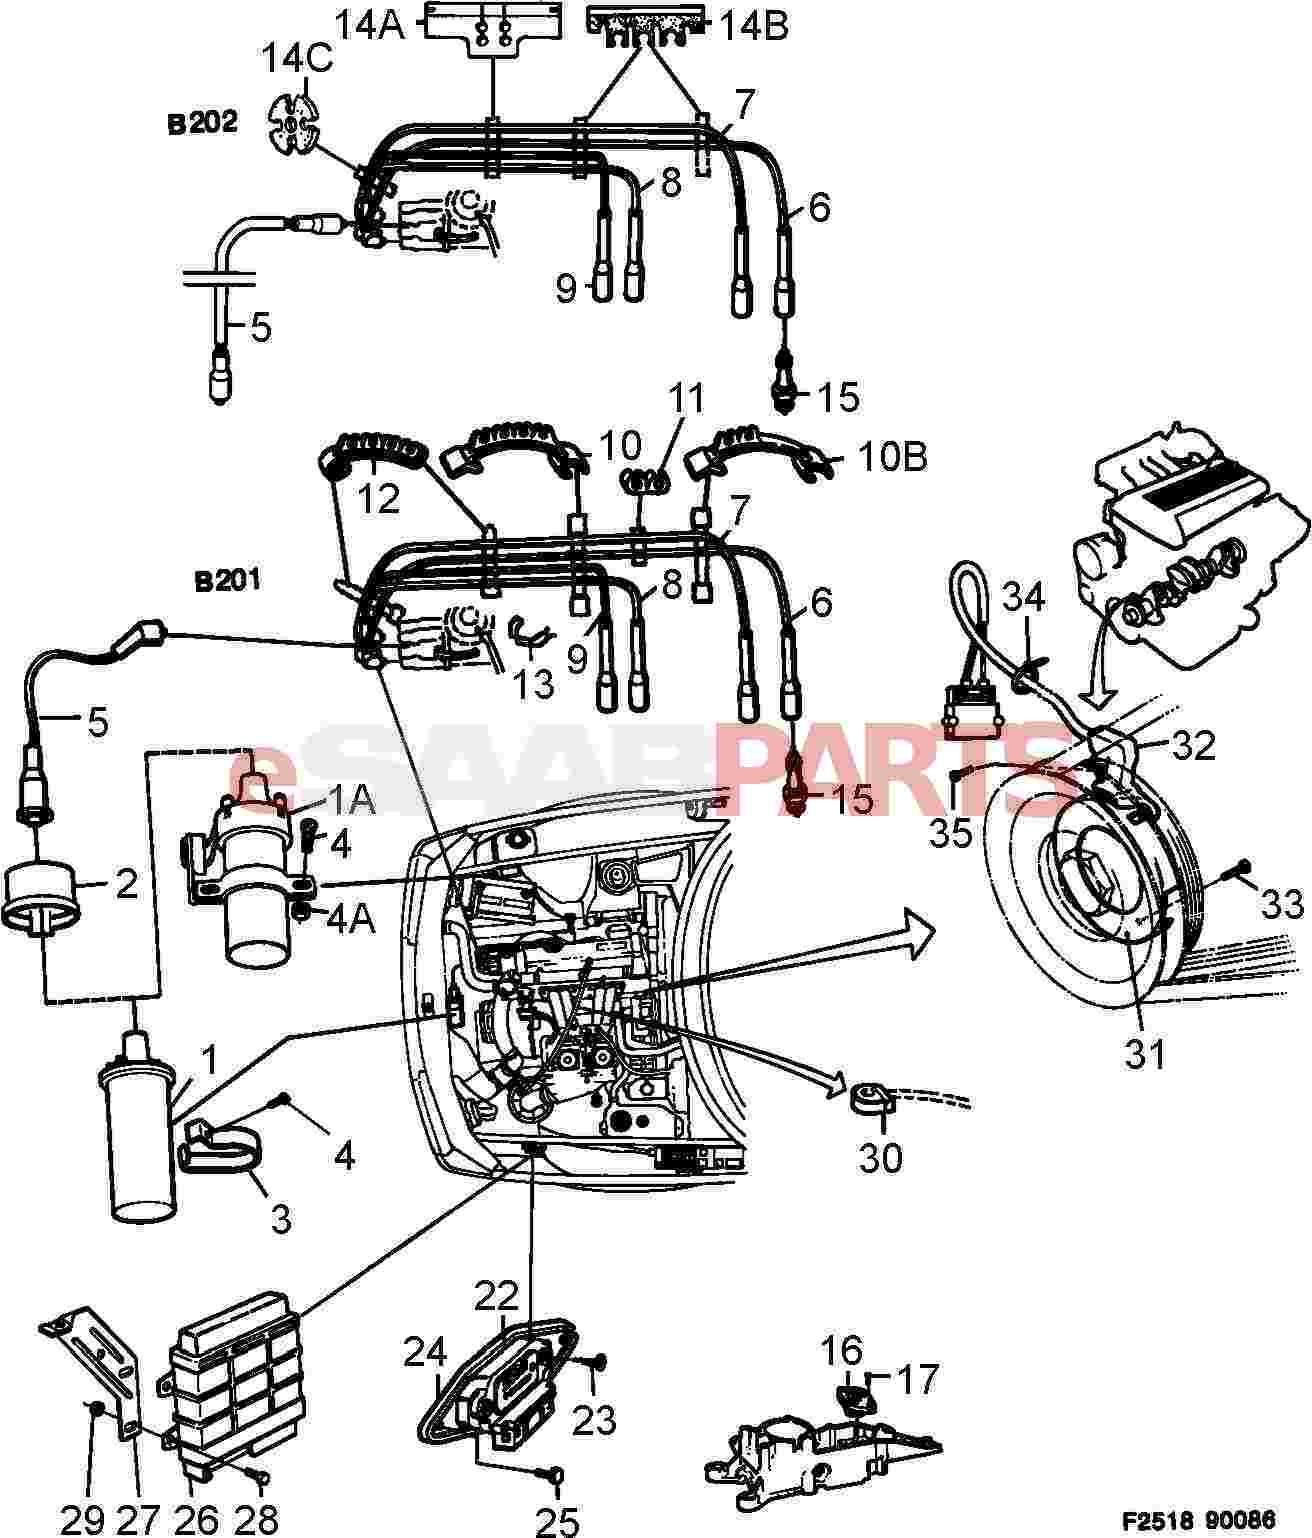 saab 900 engine and transmission diagram